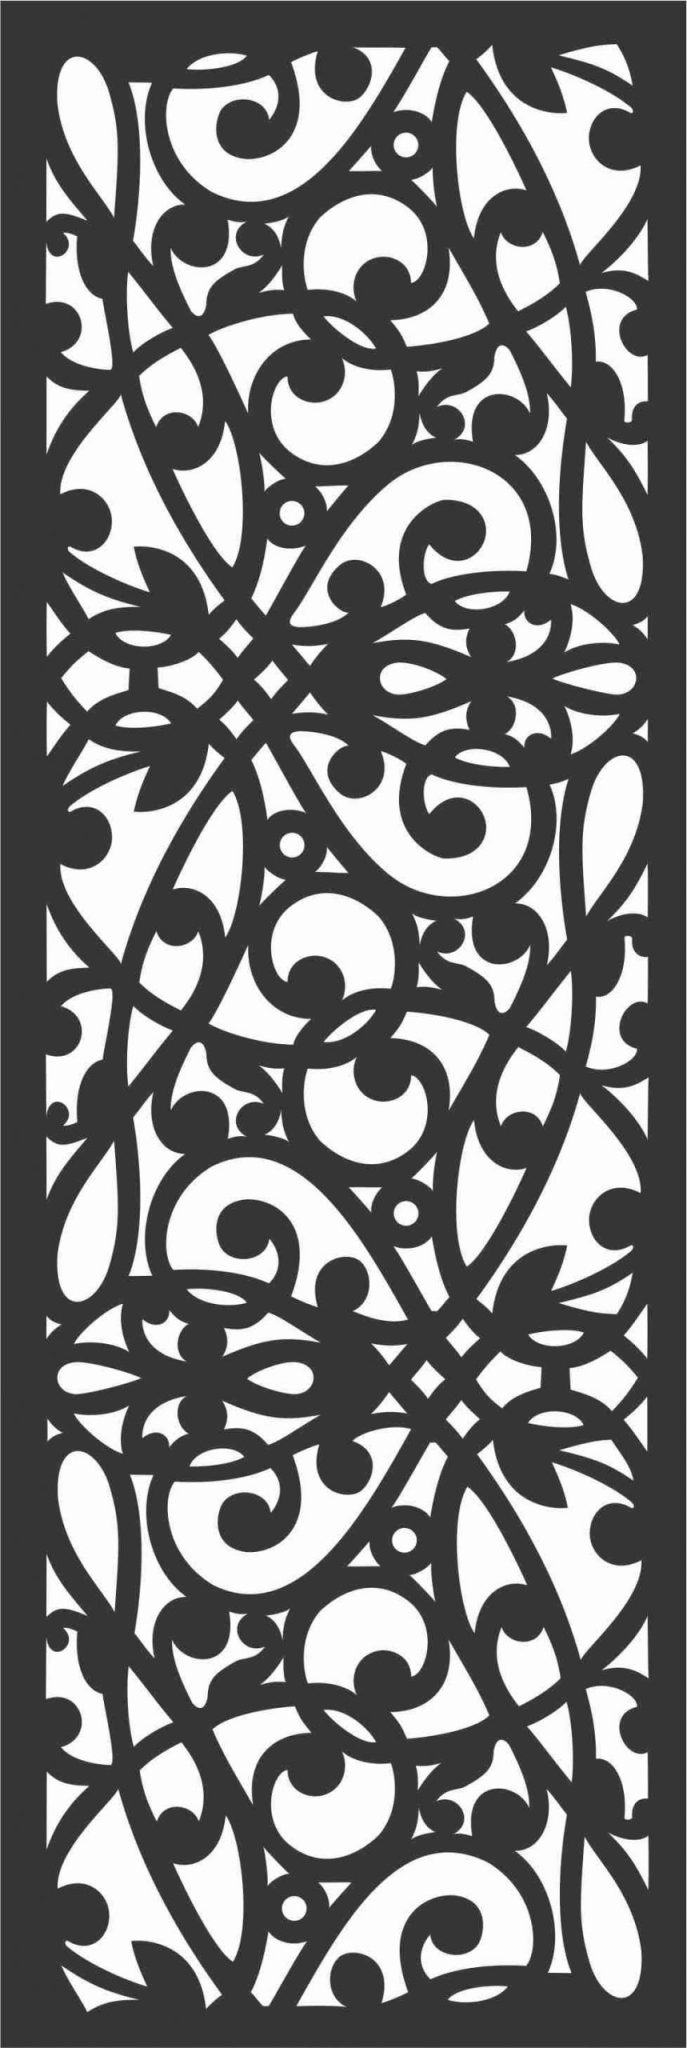 Floral Screen Patterns Design 11 Free DXF File